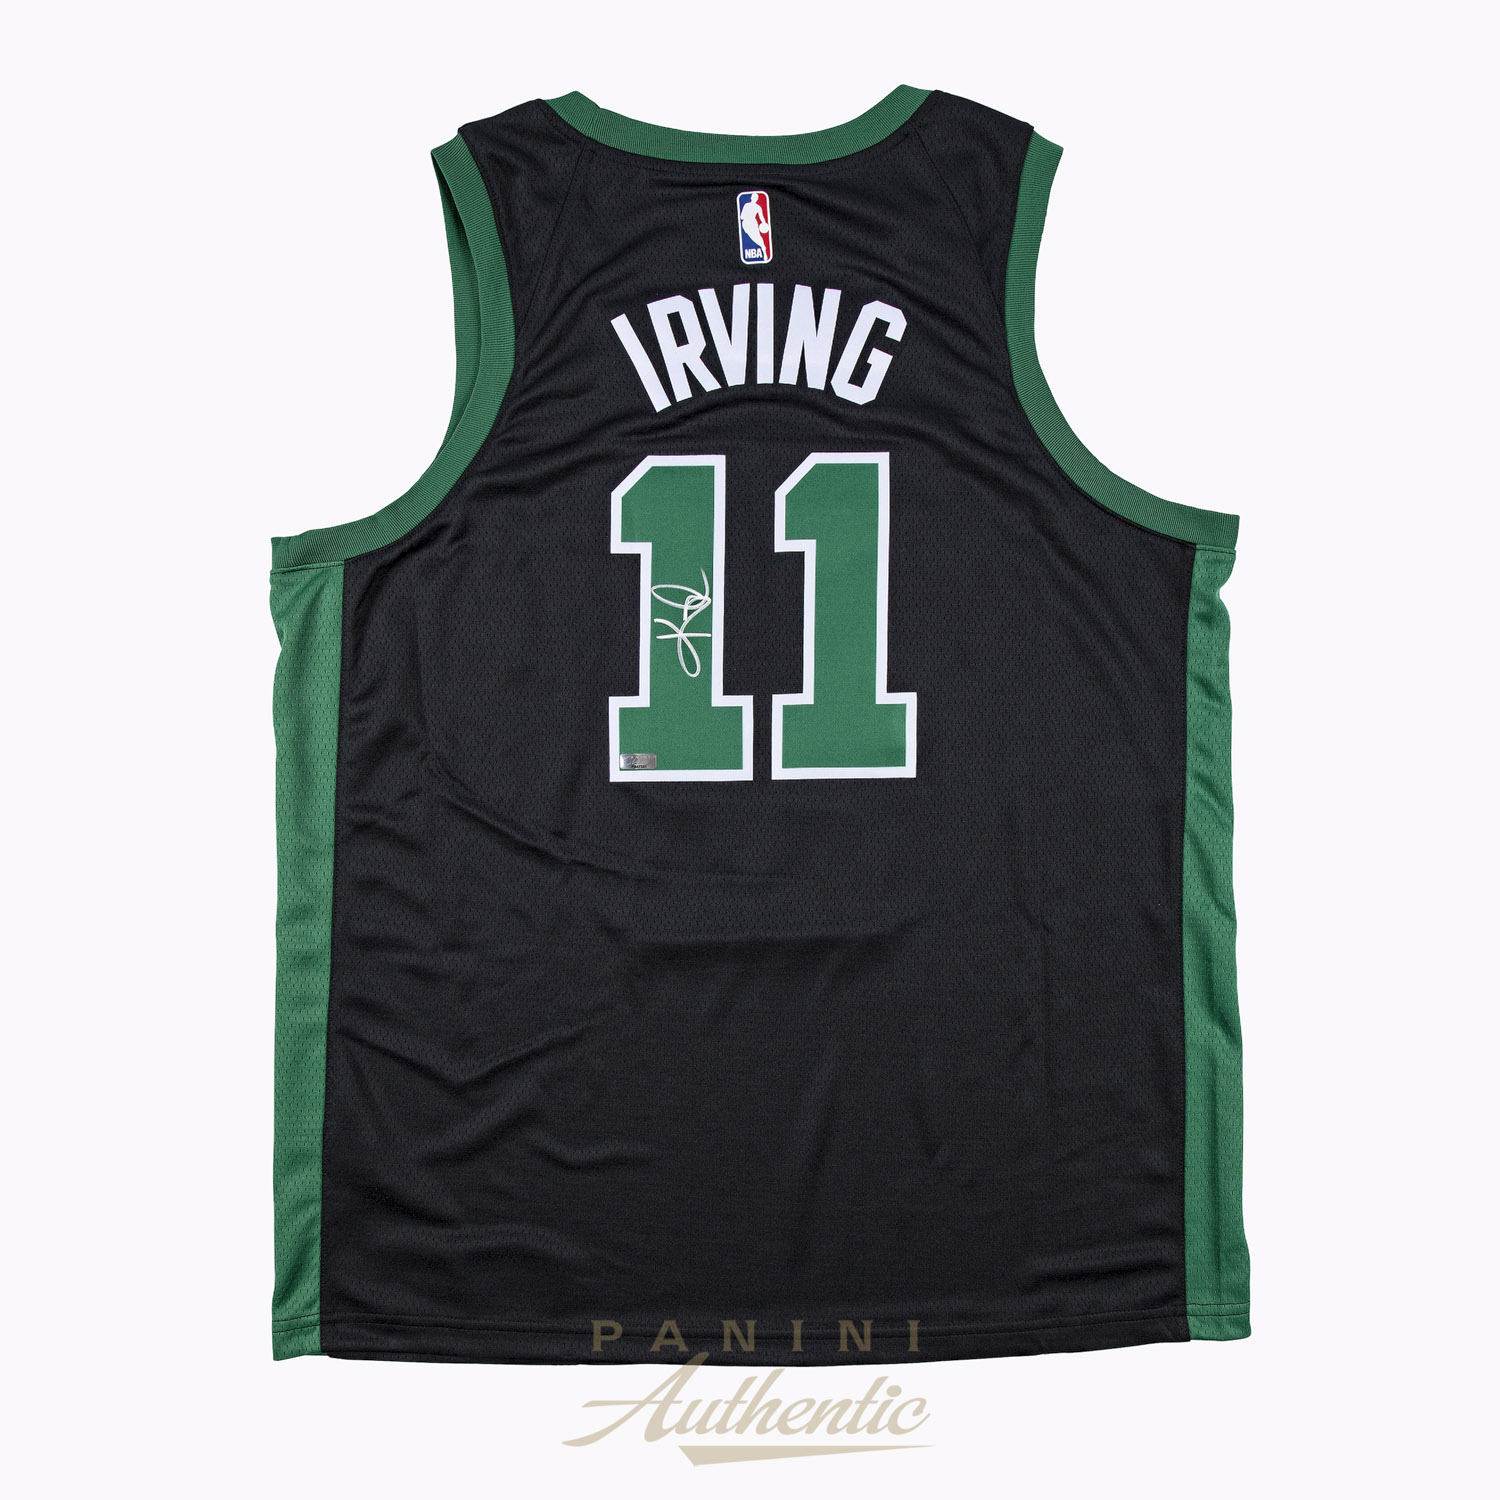 brand new 9a633 1ff5e Kyrie Irving Autographed Boston Celtics Black Nike Swingman ...